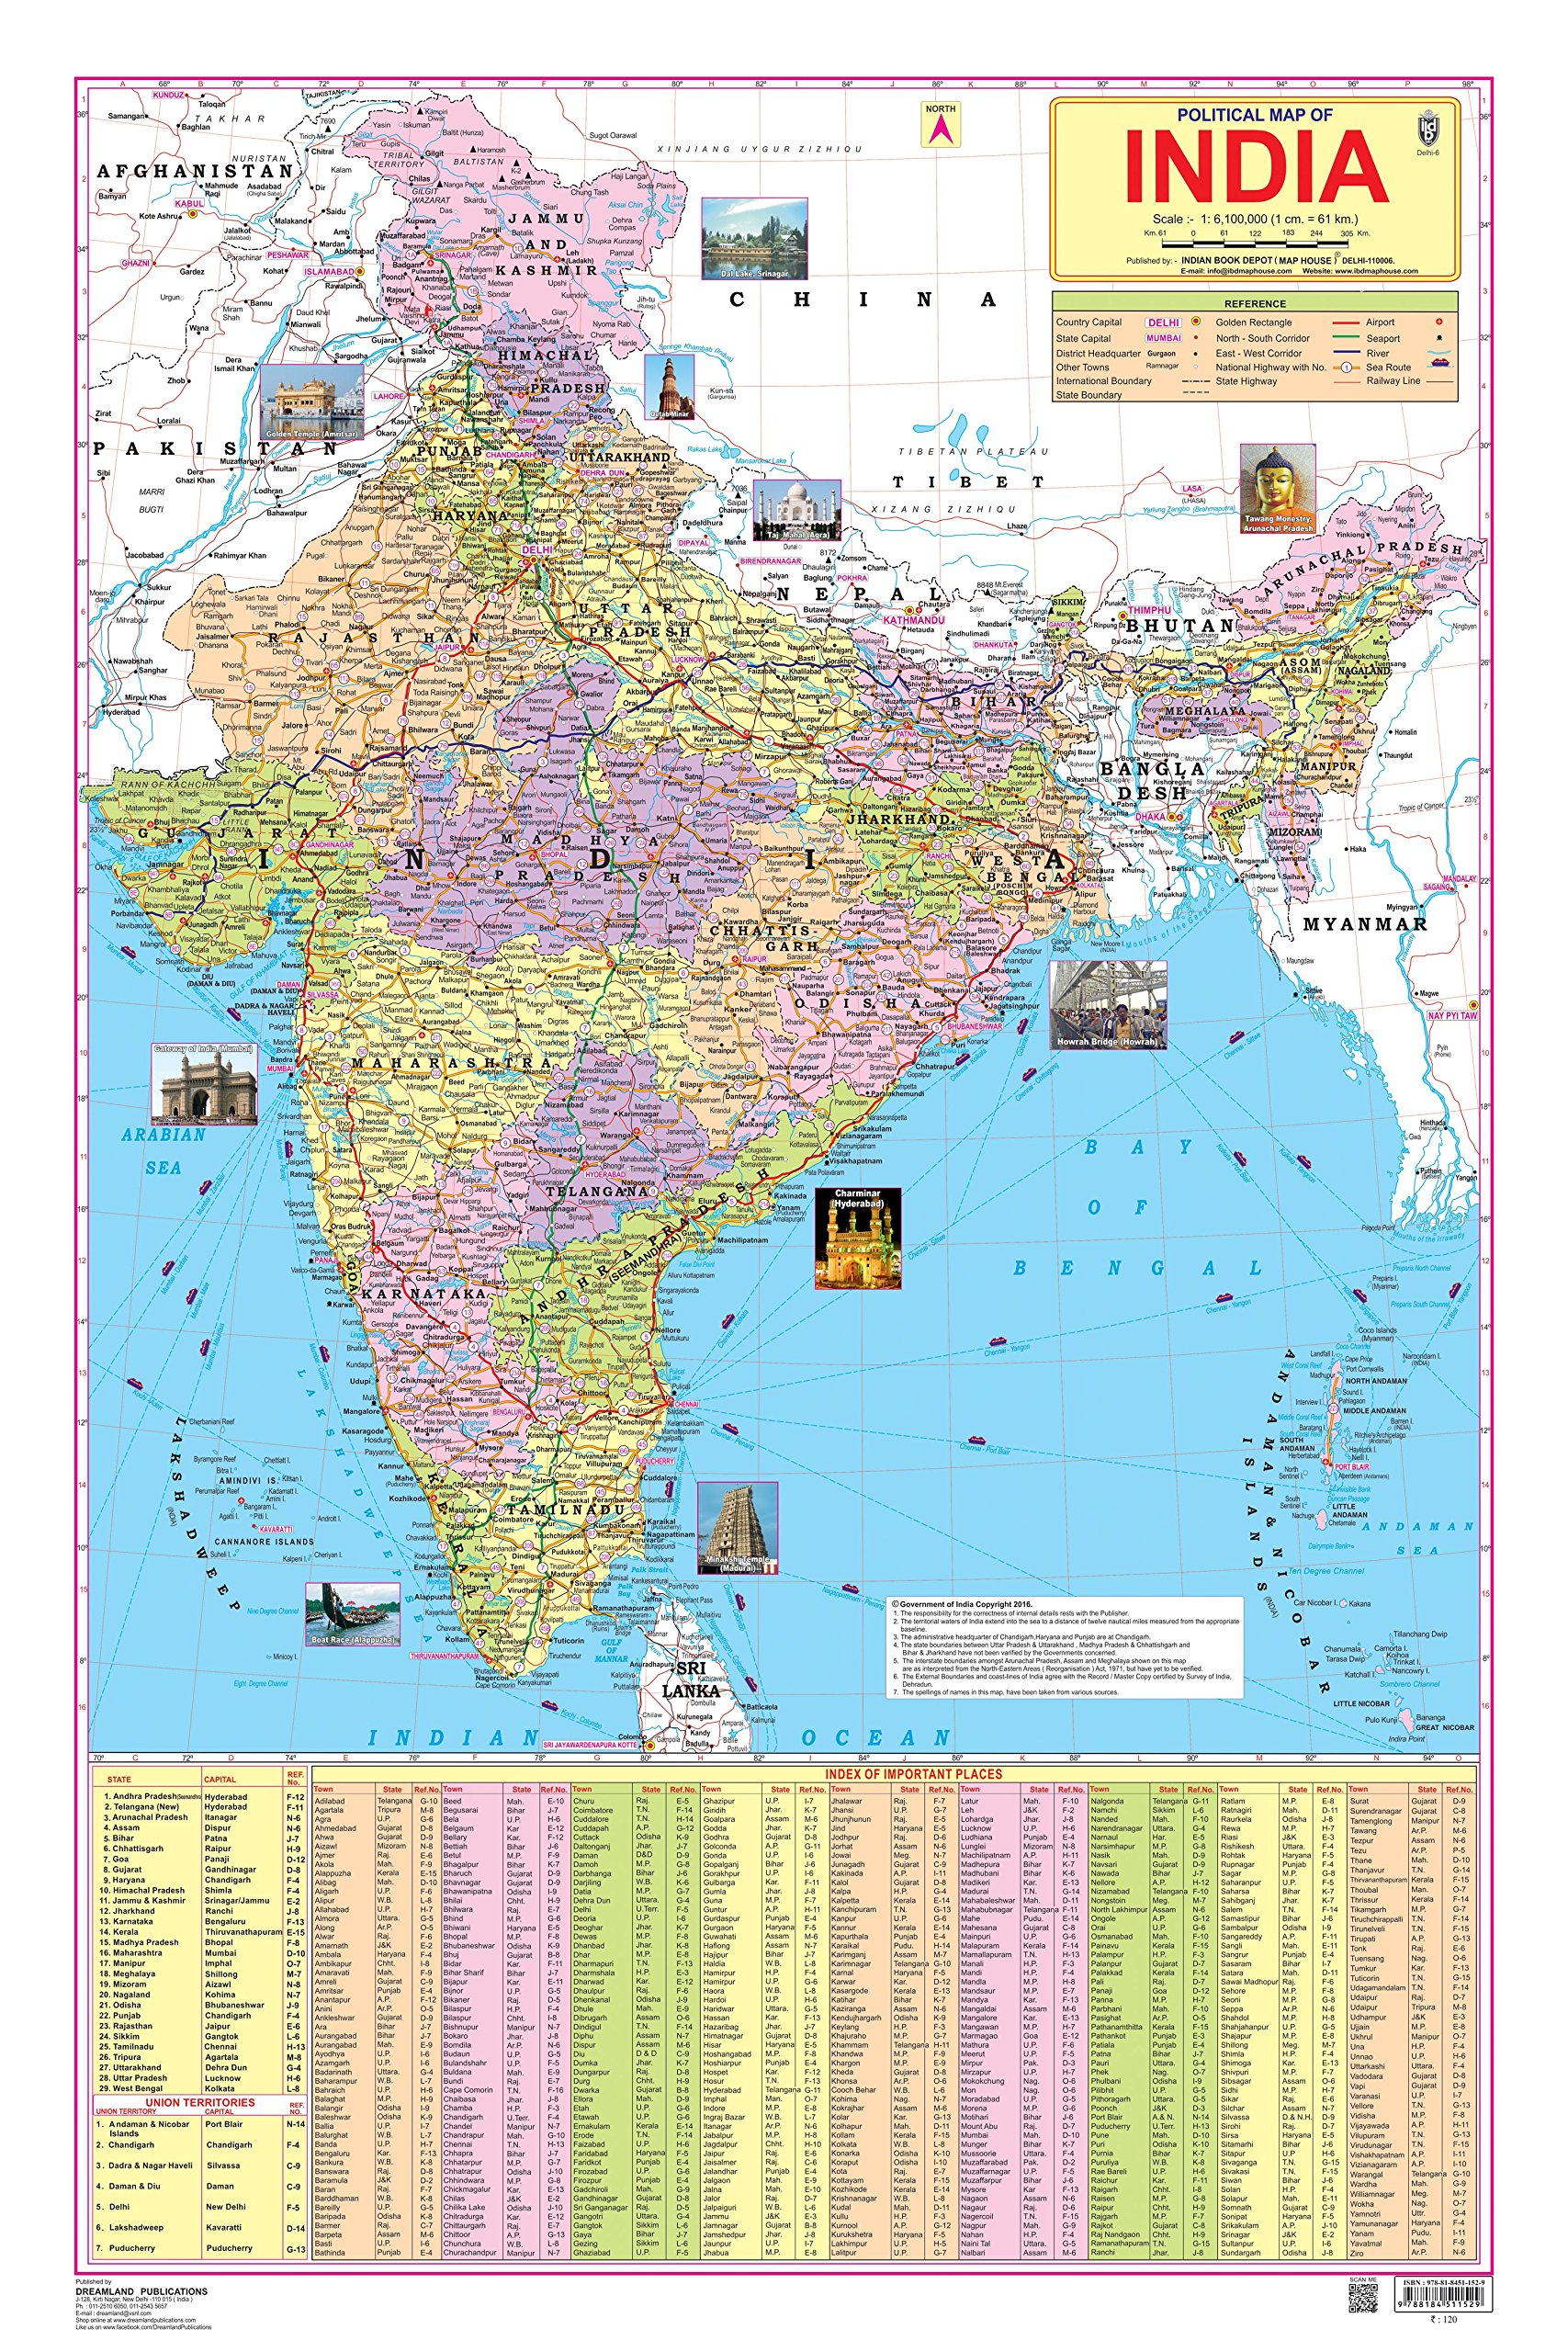 Buy india map book online at low prices in india india map reviews buy india map book online at low prices in india india map reviews ratings amazon gumiabroncs